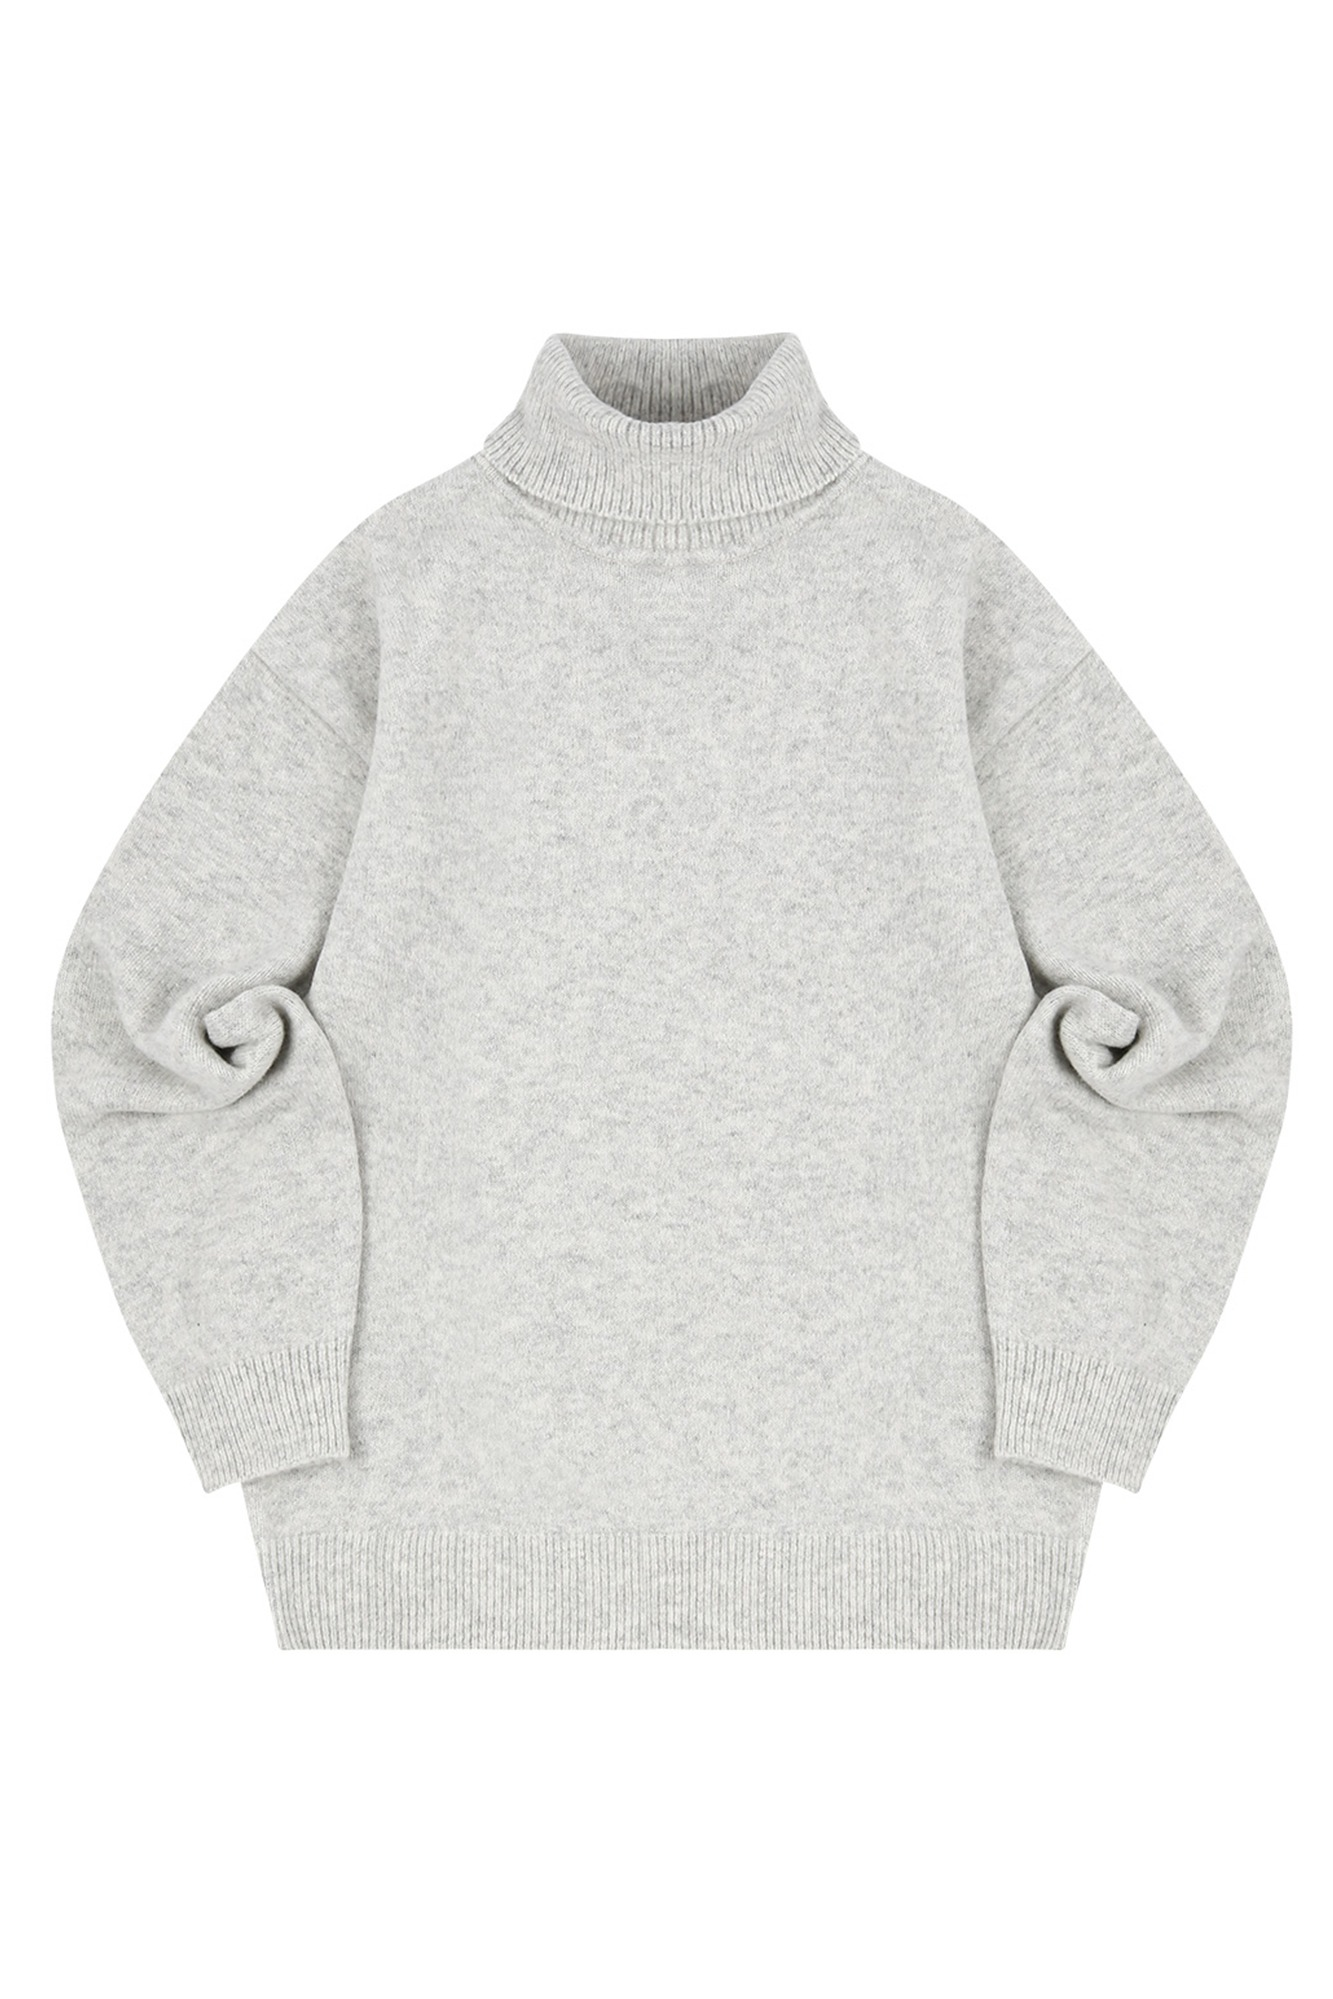 MELANGE TURTLE NECK SWEATER_LIGHT GRAY